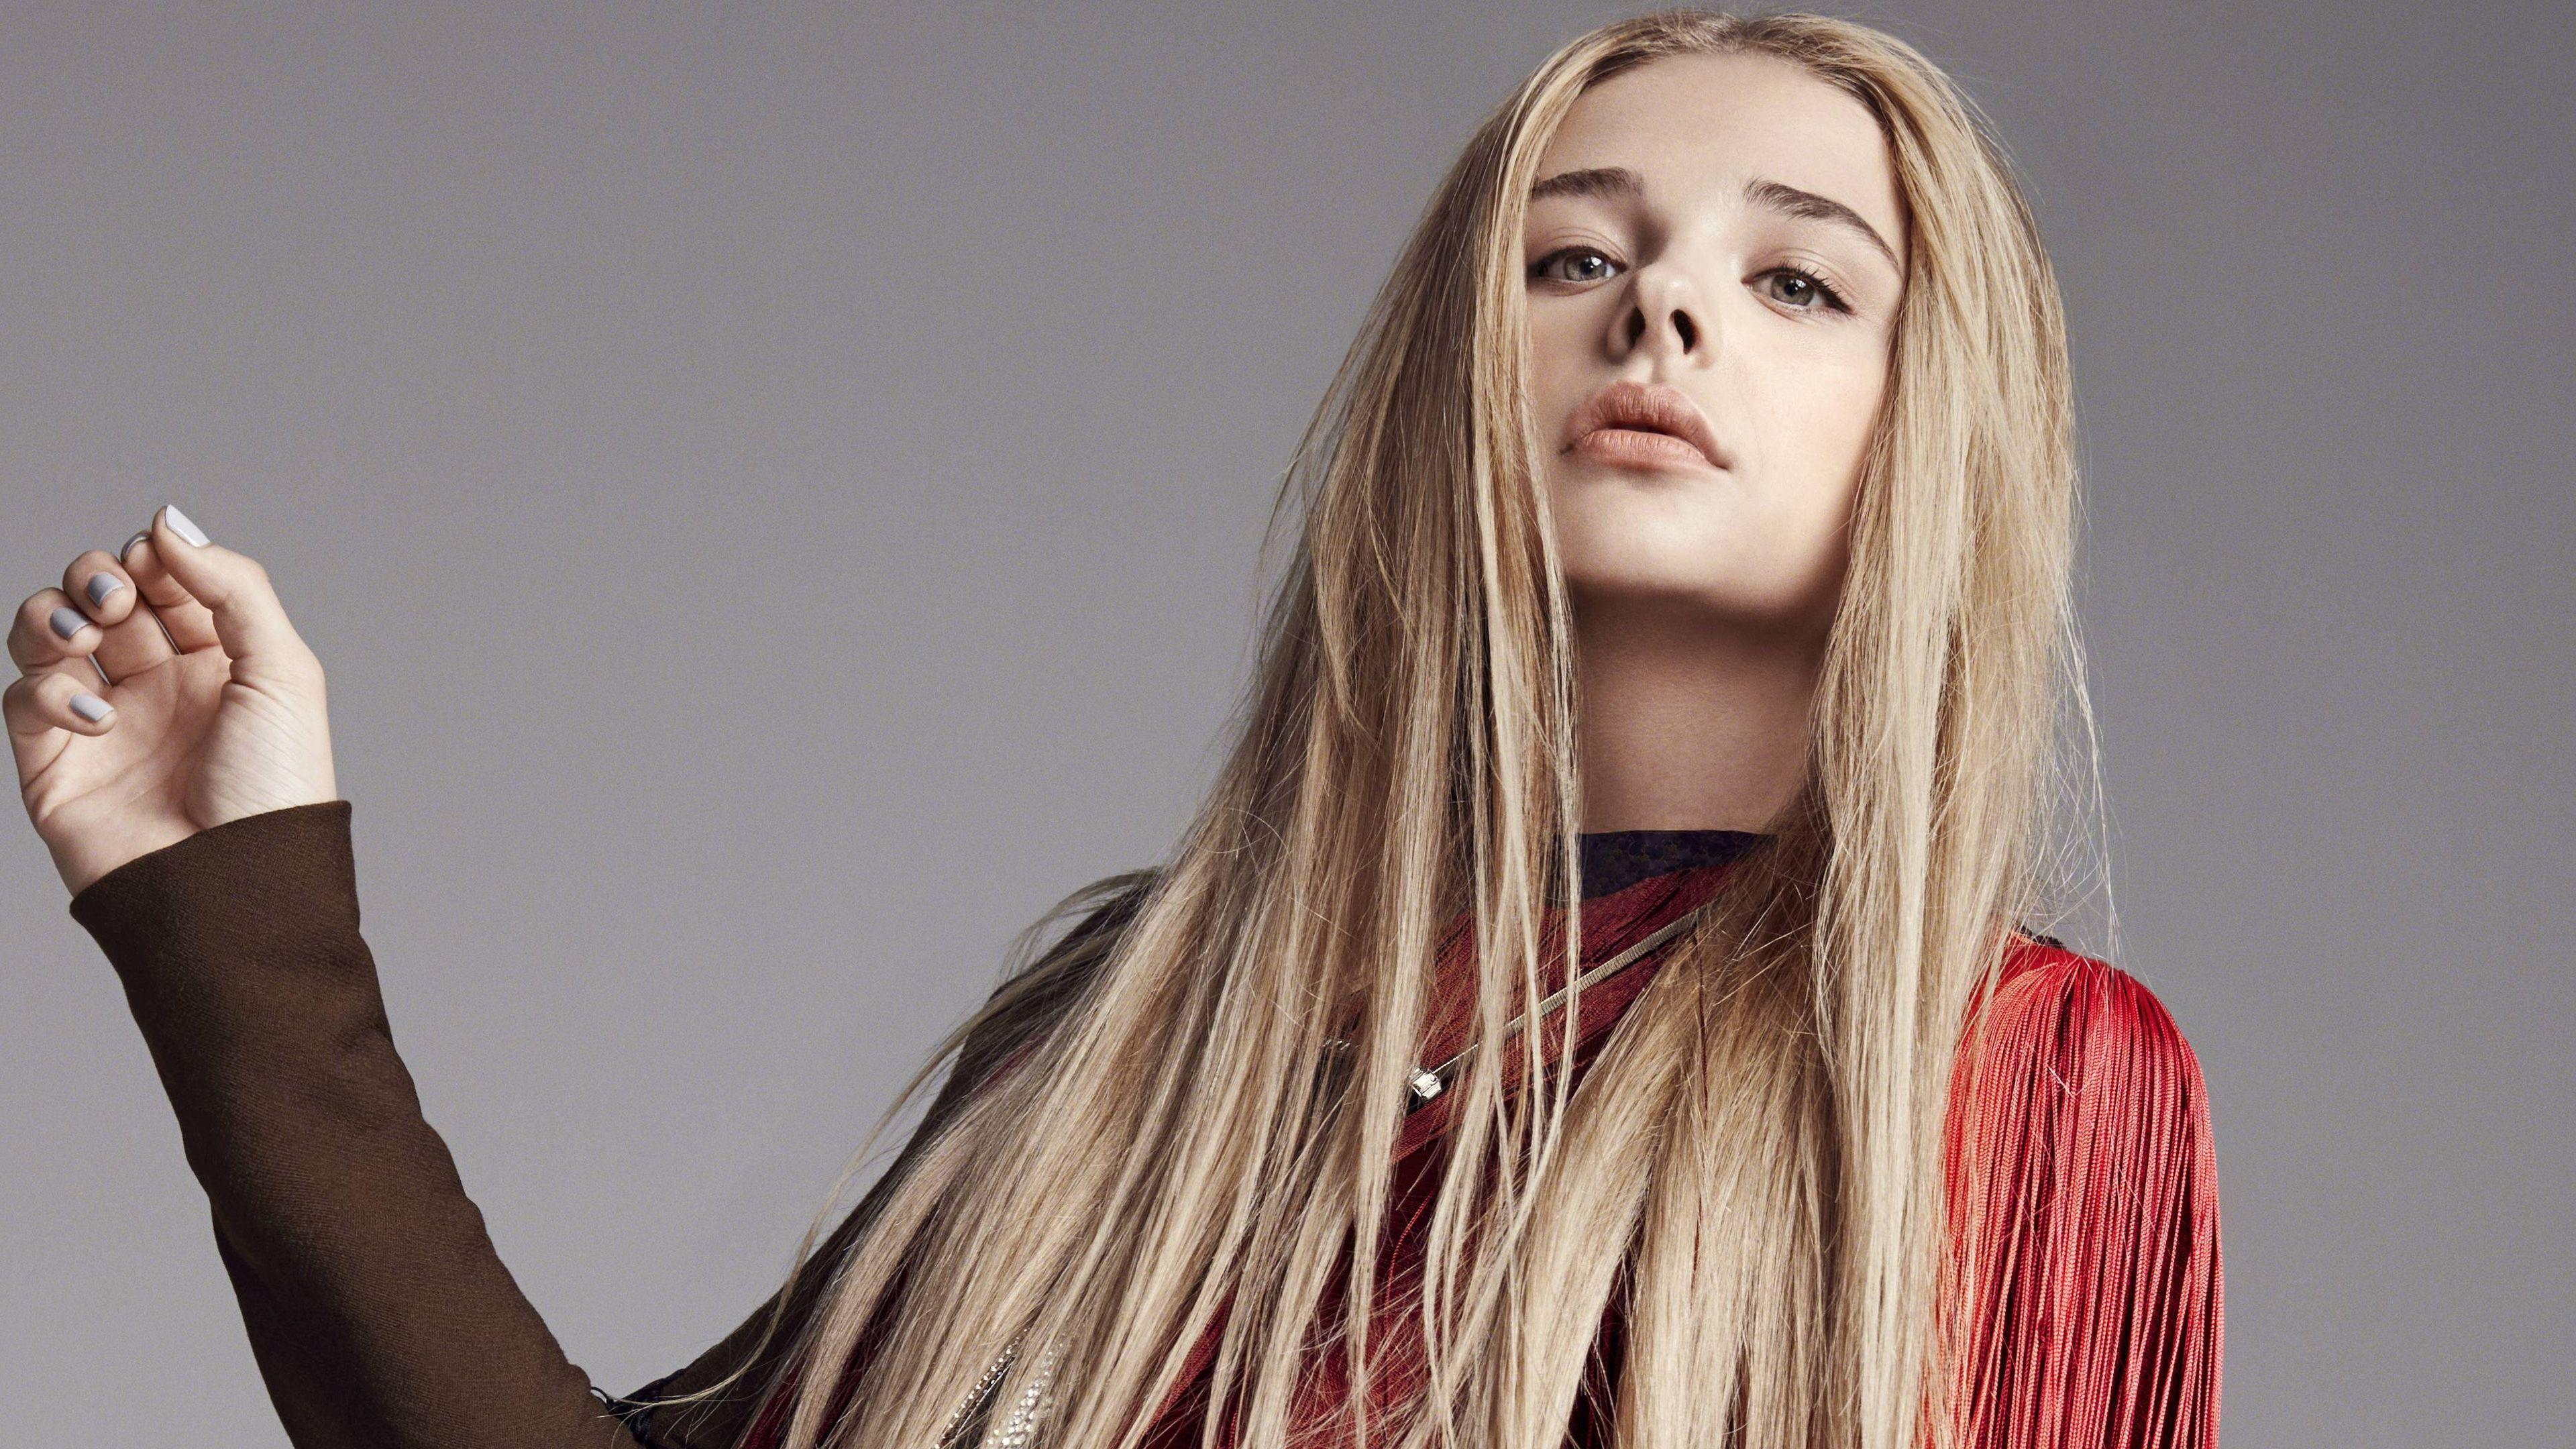 Chloe Moretz Wallpapers - Page 1 - HD Wallpapers